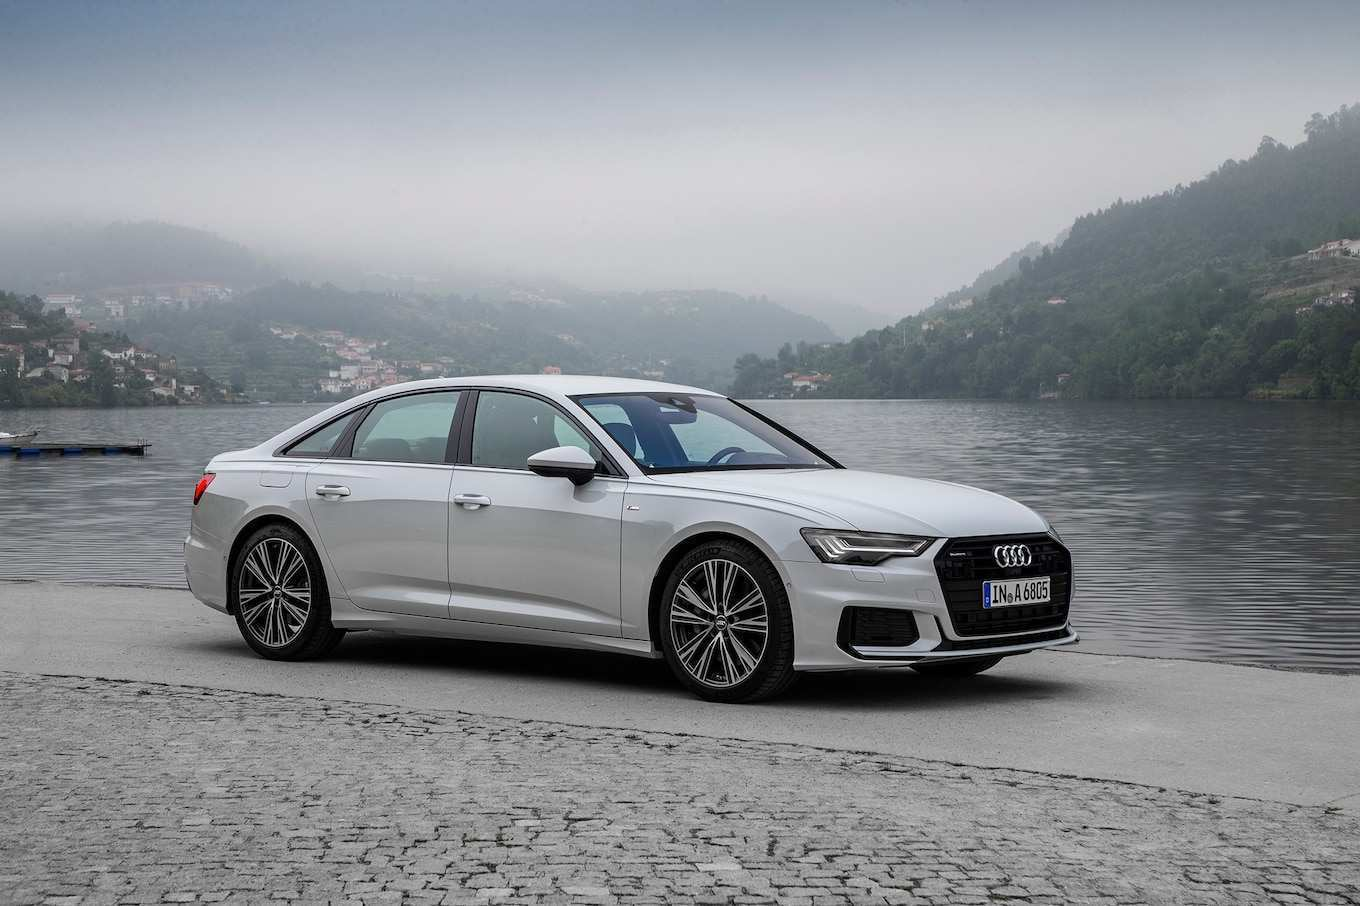 30 Great 2019 Audi A6 Release Date Redesign and Concept with 2019 Audi A6 Release Date